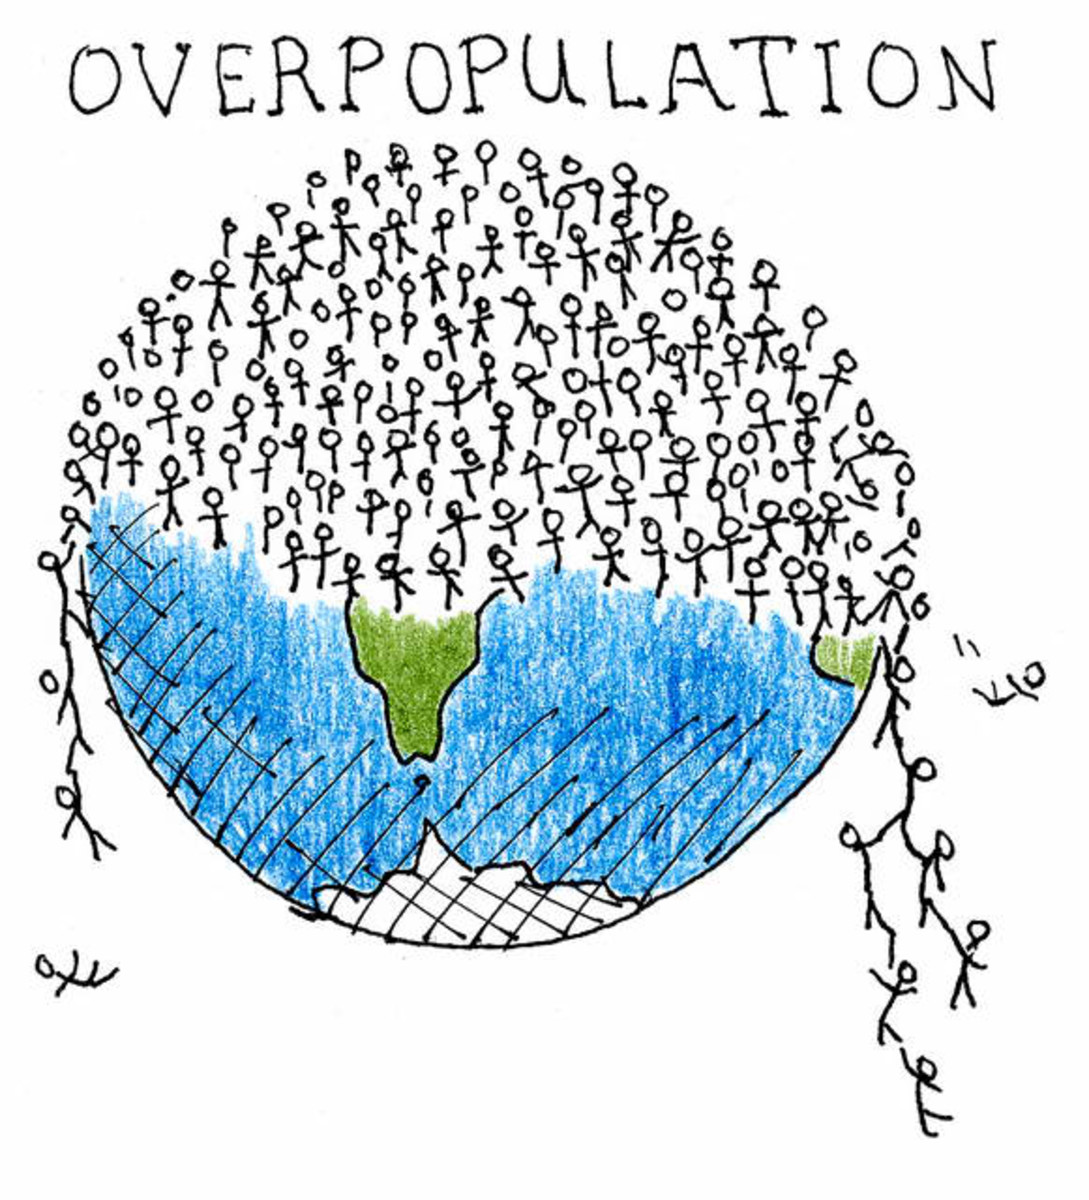 Human Overpopulation: Its Causes, Effects and Possible Solutions